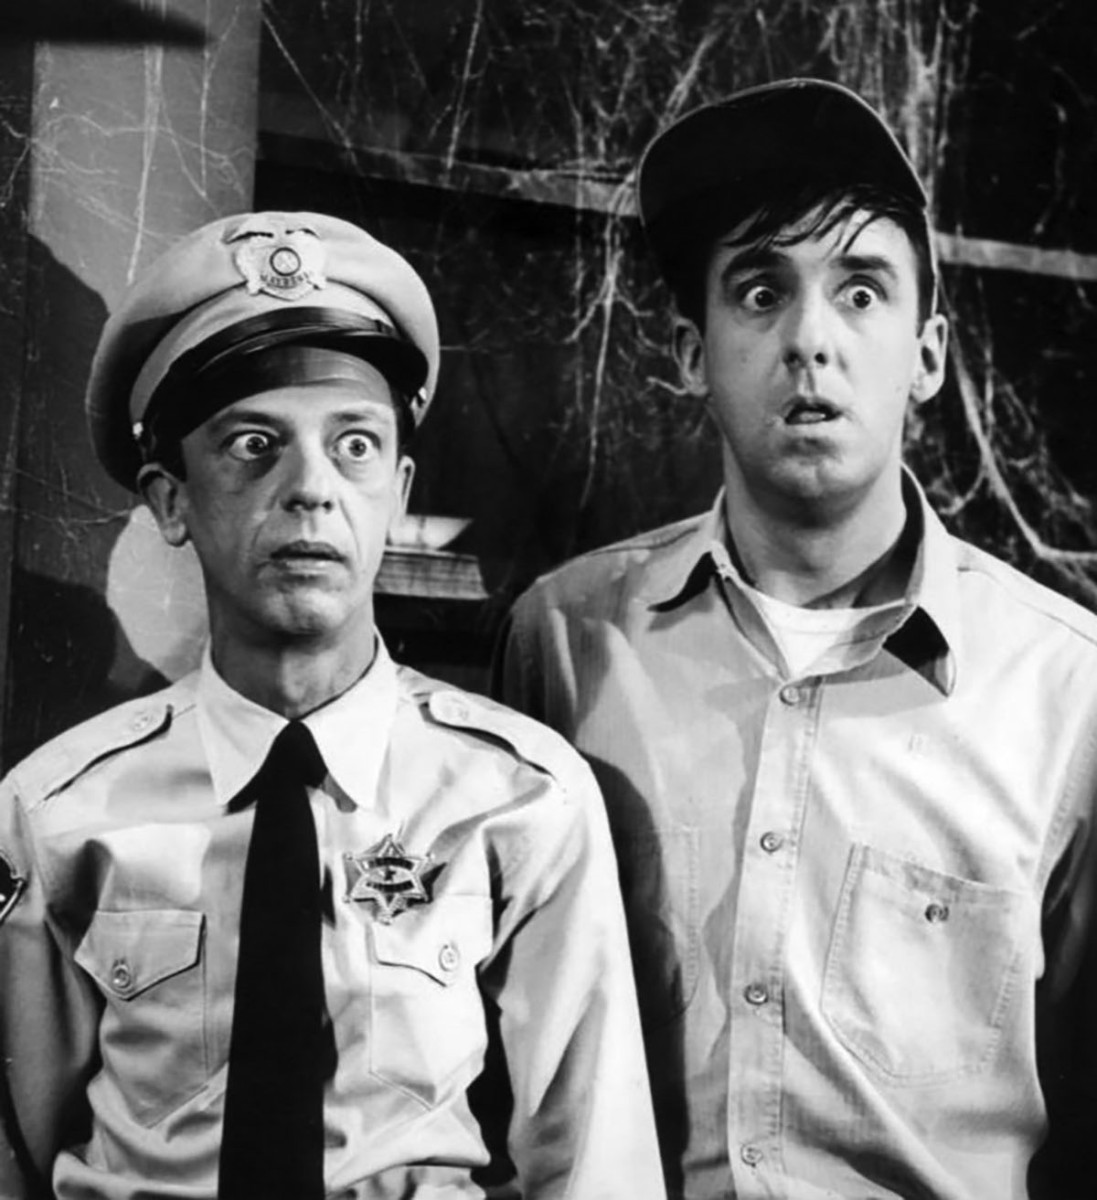 don_knotts_jim_nabors_andy_griffith_show_1964.jpg